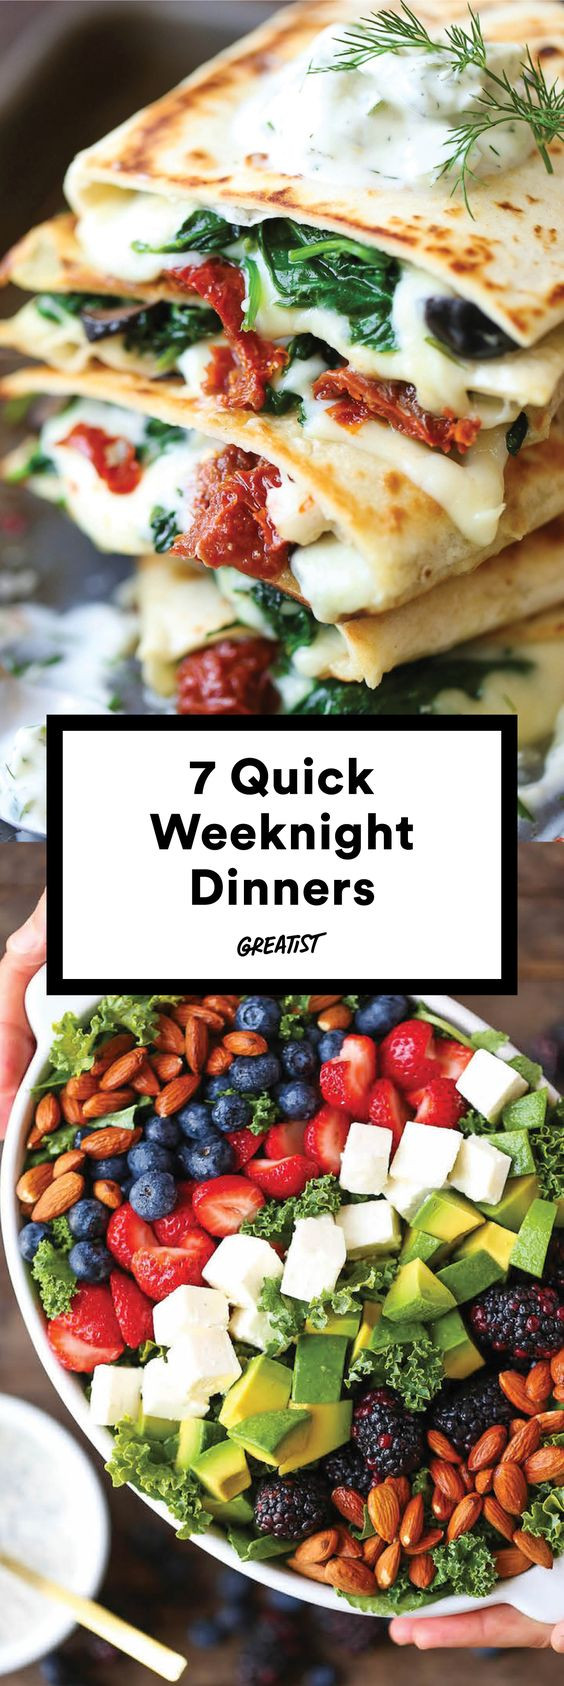 Quick Healthy Family Dinners  7 Quick Fix Dinners That Make Weeknight Cooking a Cinch